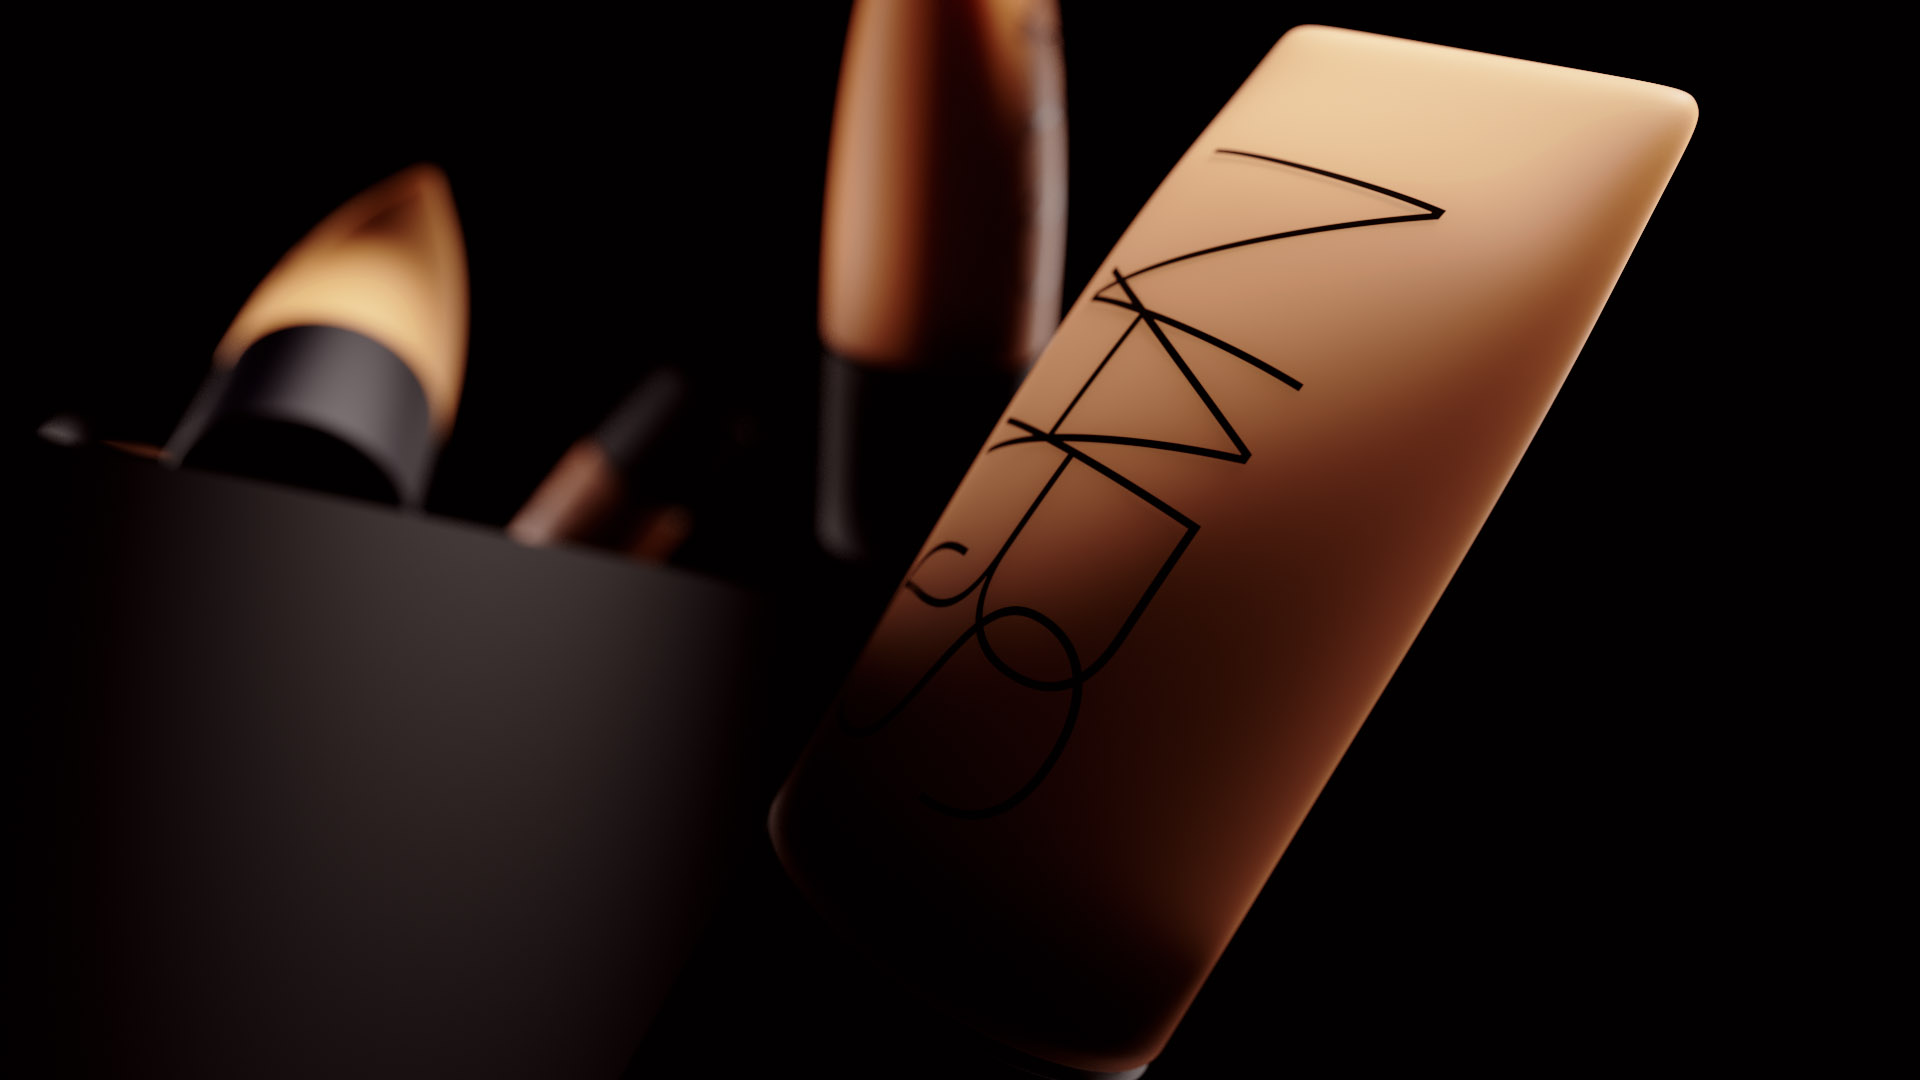 NARS_Shot_09_03TOUCH